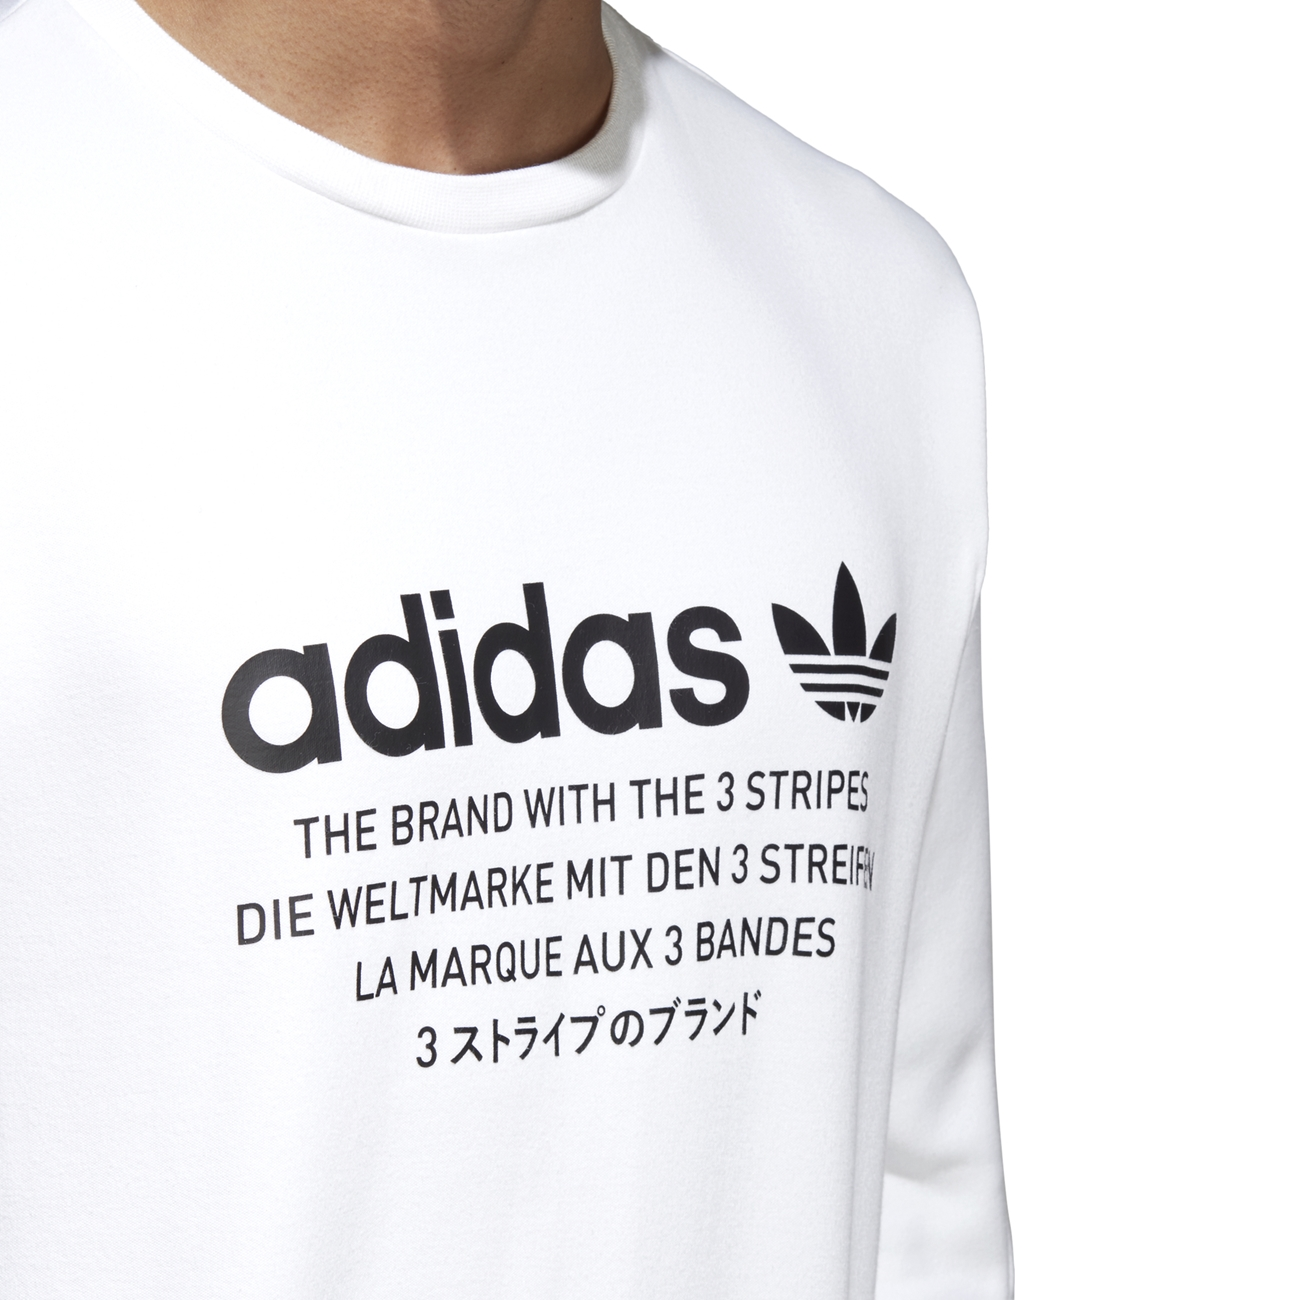 Adidas the brand with the 3 stripes